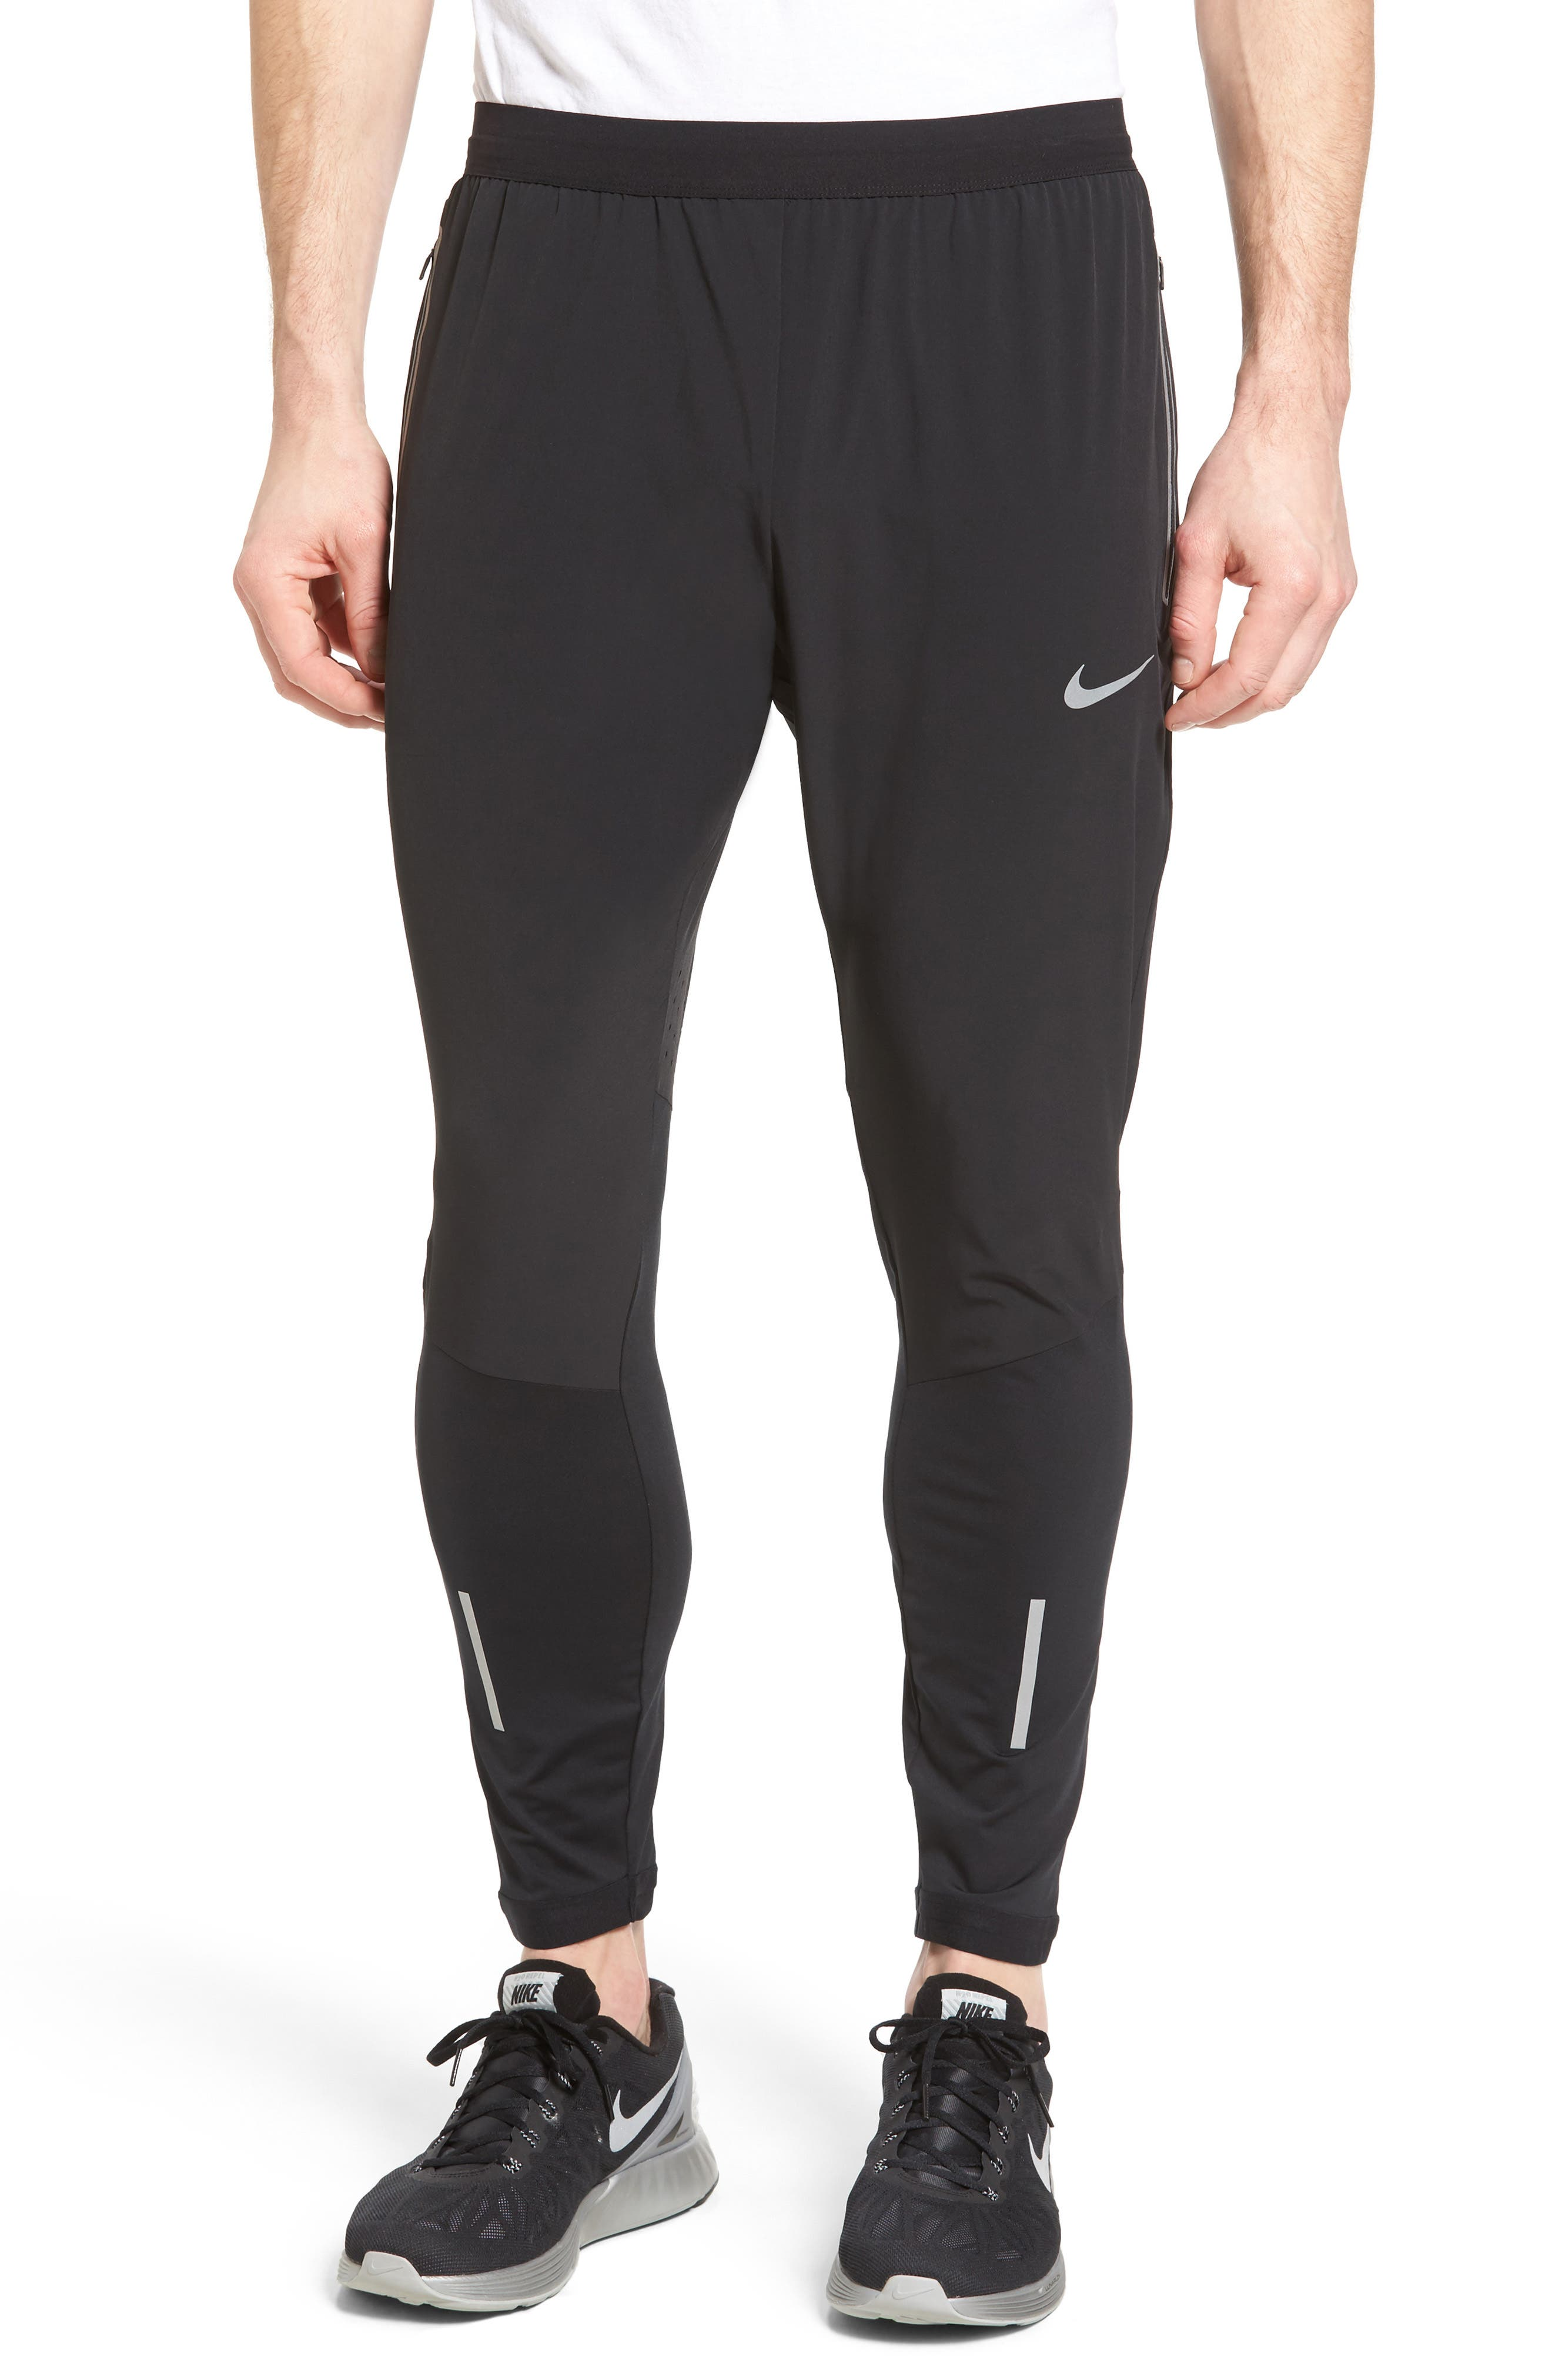 Flex Running Pants,                             Main thumbnail 1, color,                             BLACK/ PURE PLATINUM